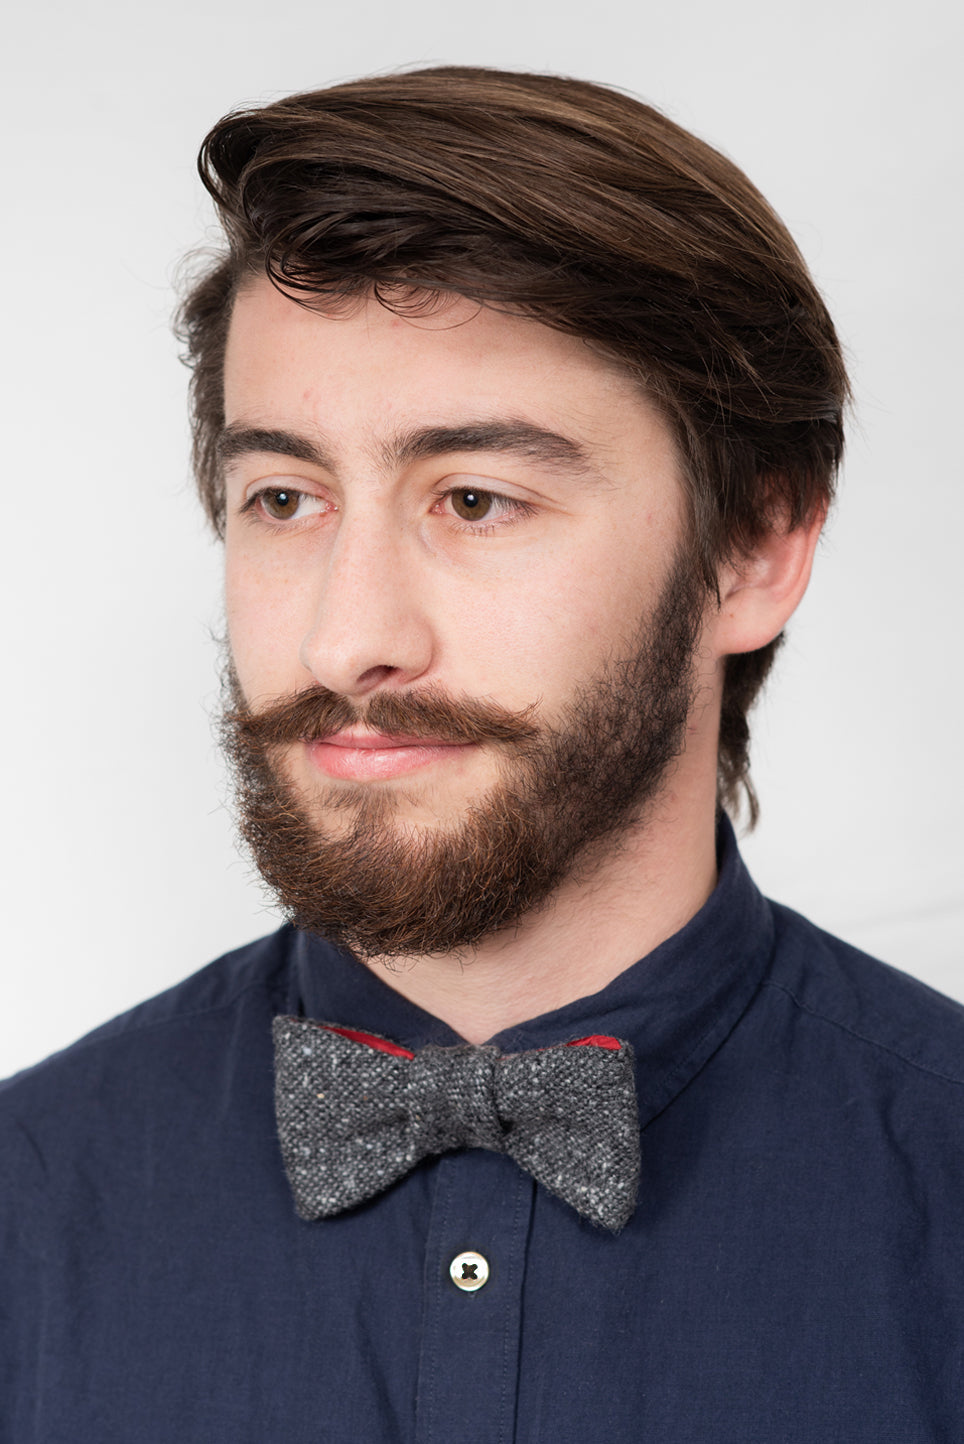 Tweed Bow Tie | Speckled Charcoal